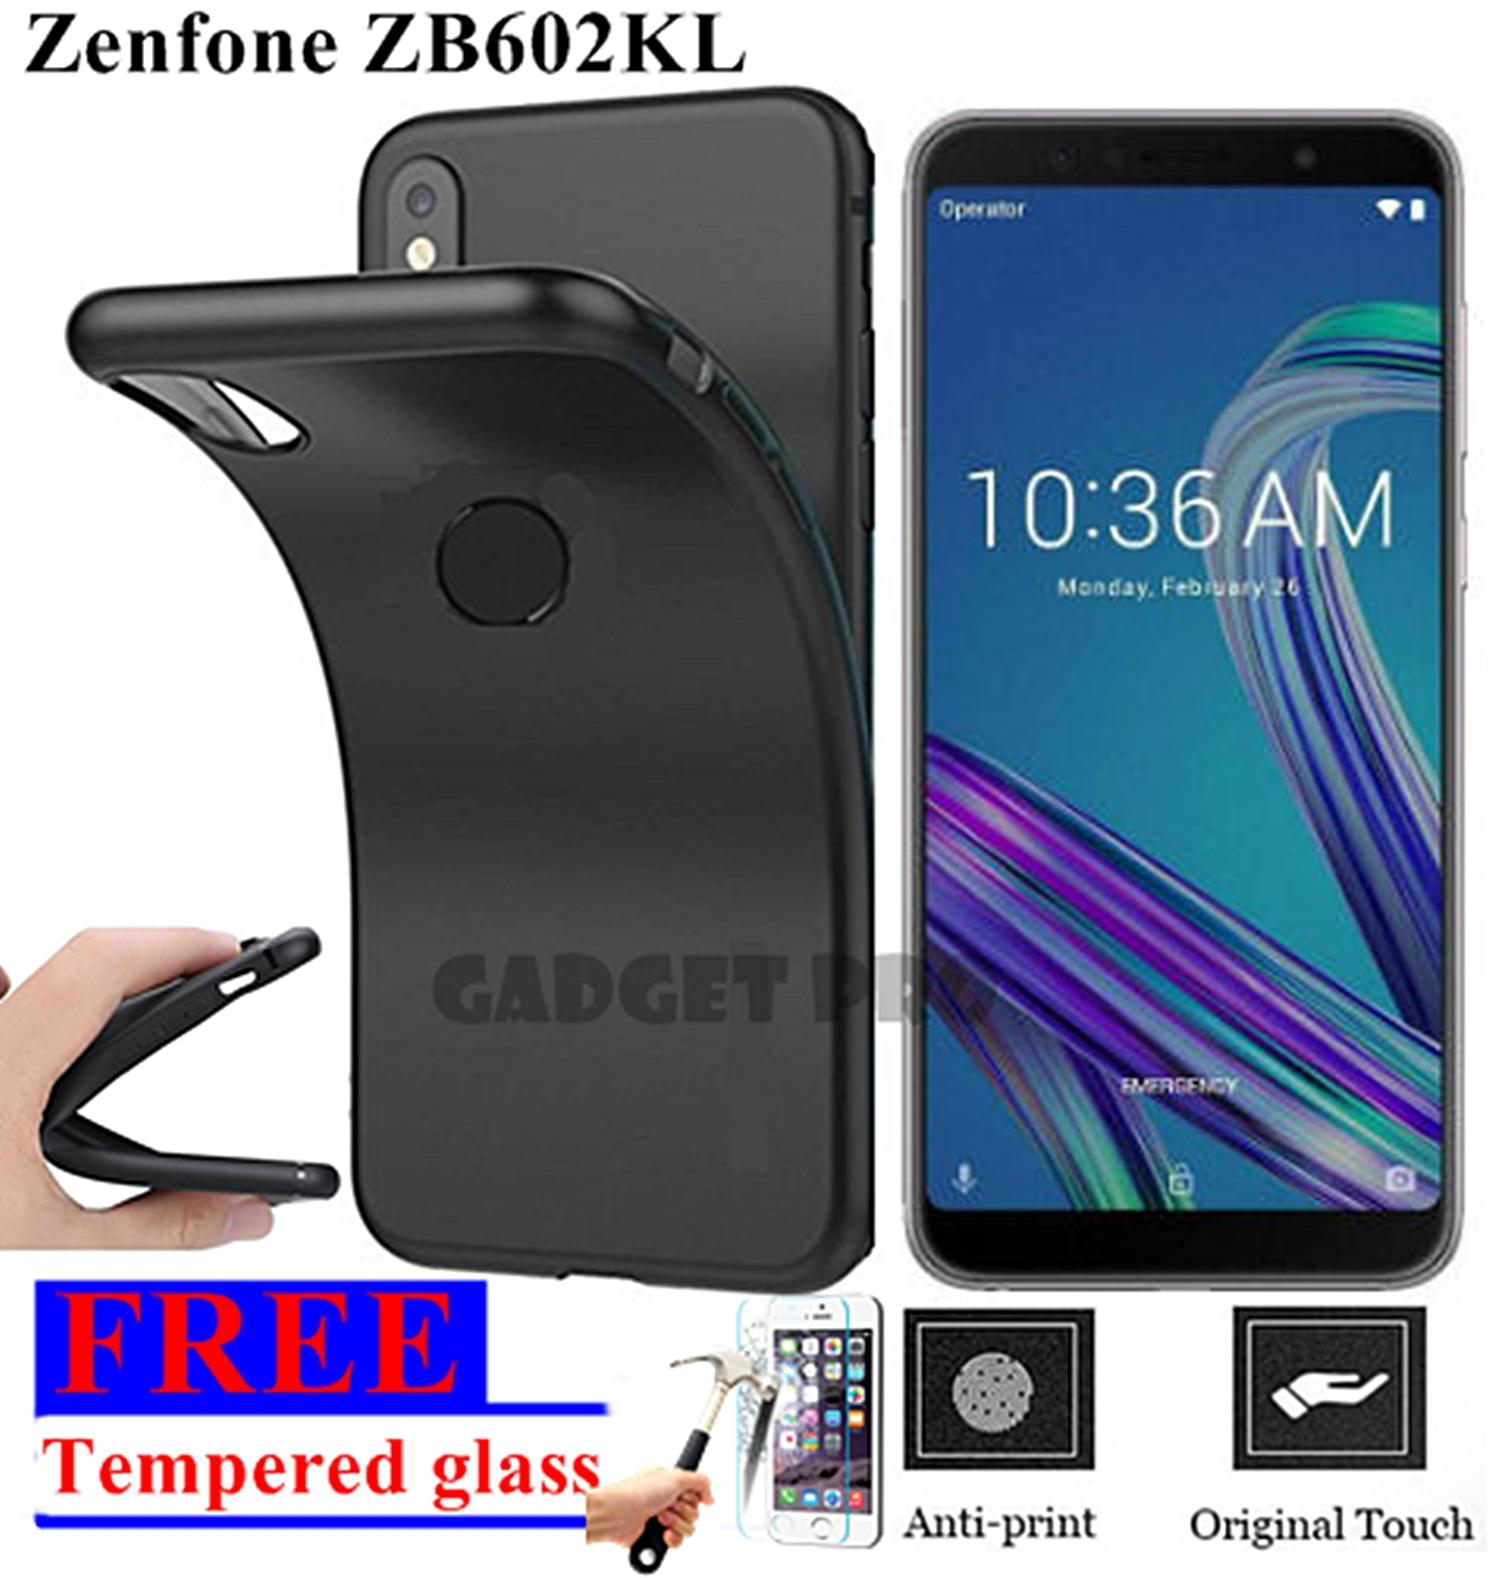 Softcase Silicon Ultrathin for Asus Zenfone Max Pro M1 ZB602KL ZB601KL SLIM MATTE BLACK FREE